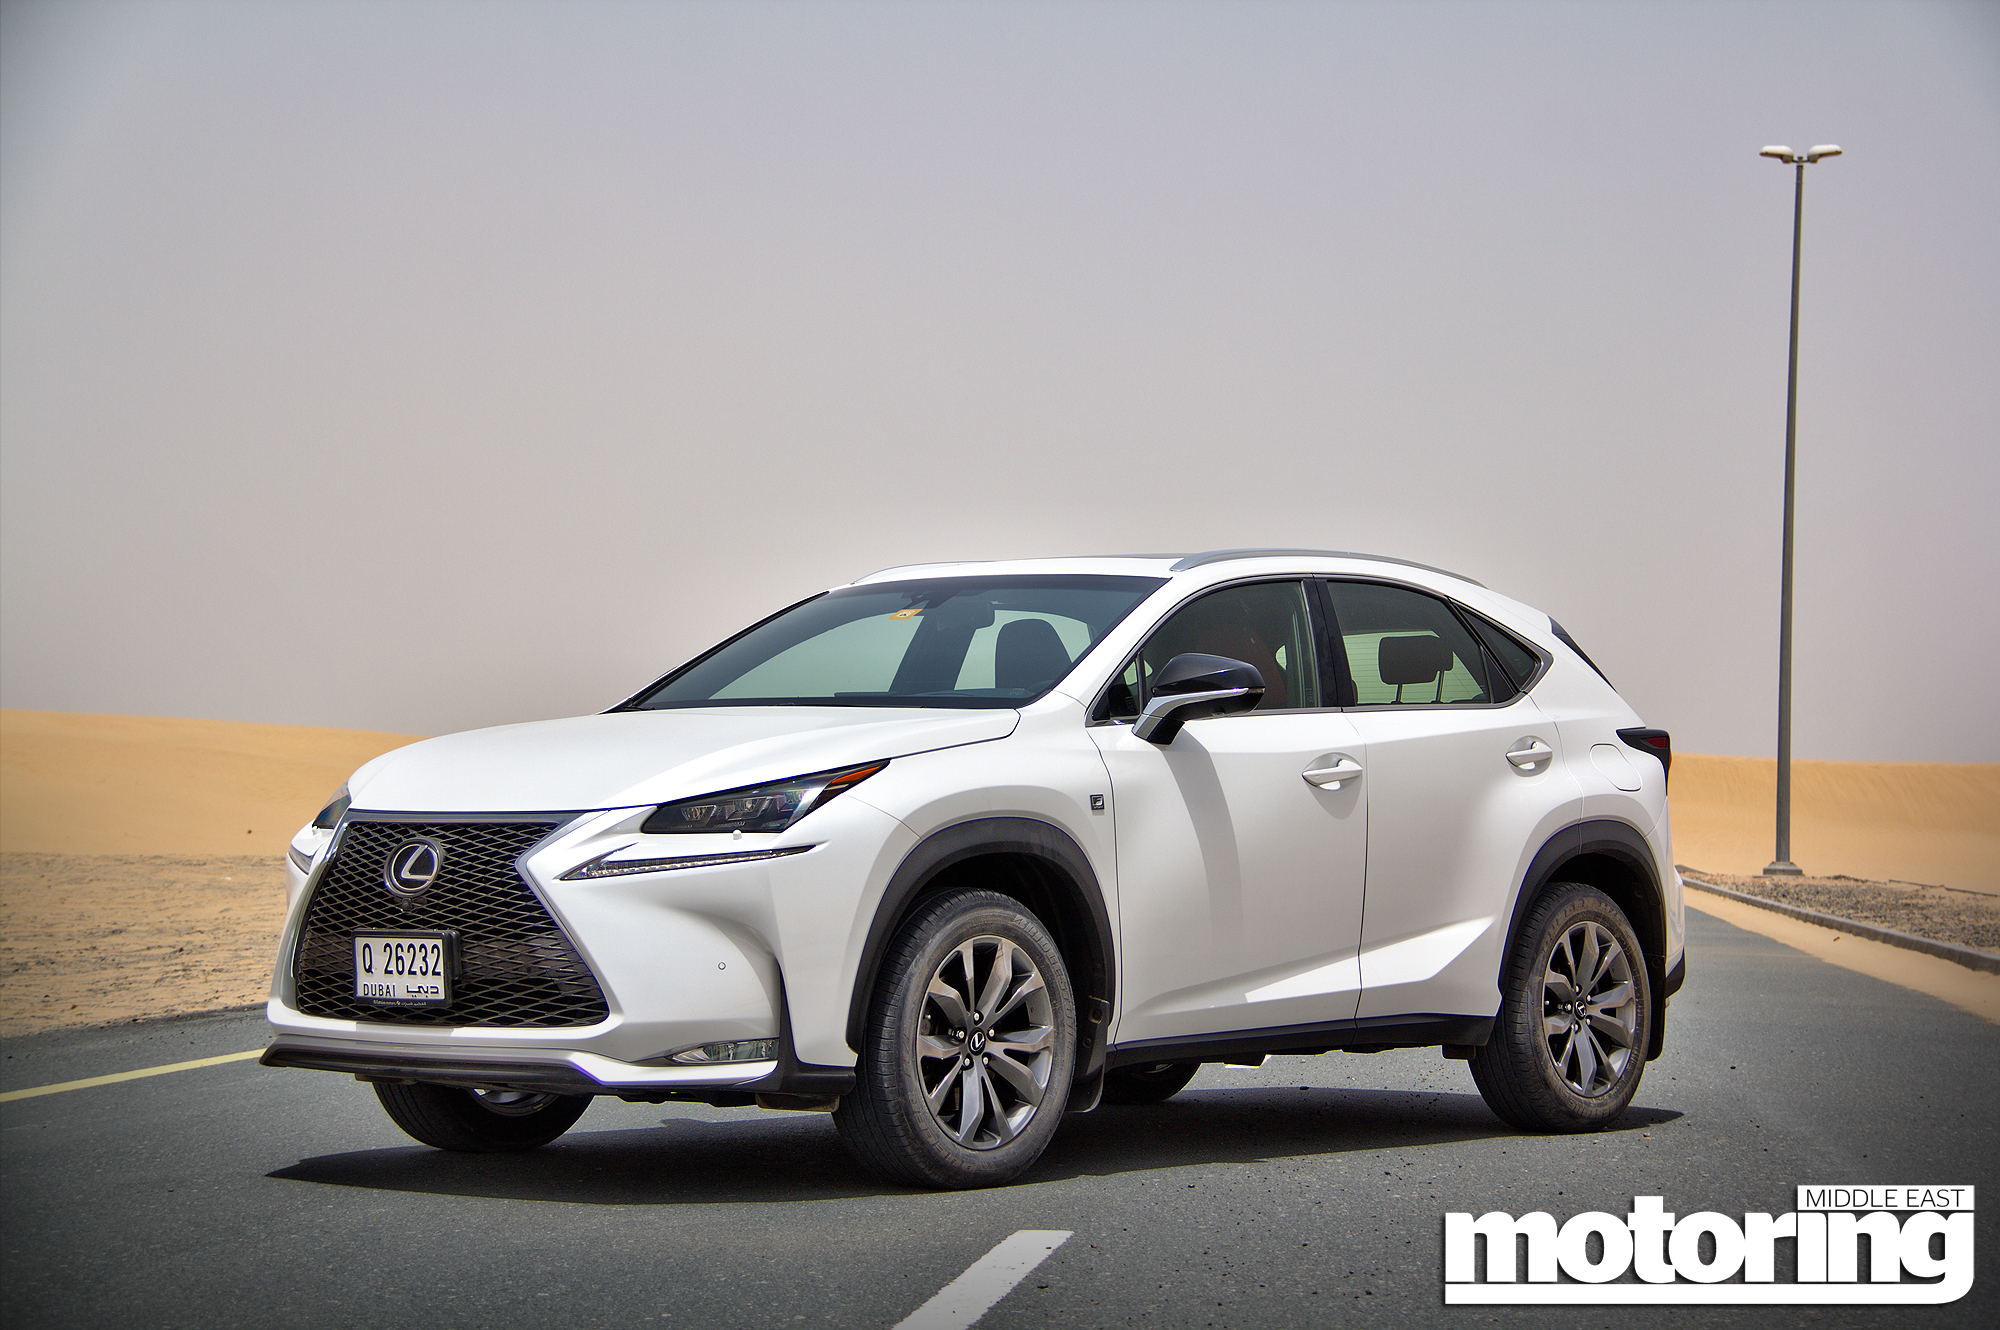 2015 lexus nx 200t video reviewmotoring middle east car news reviews and buying guides. Black Bedroom Furniture Sets. Home Design Ideas